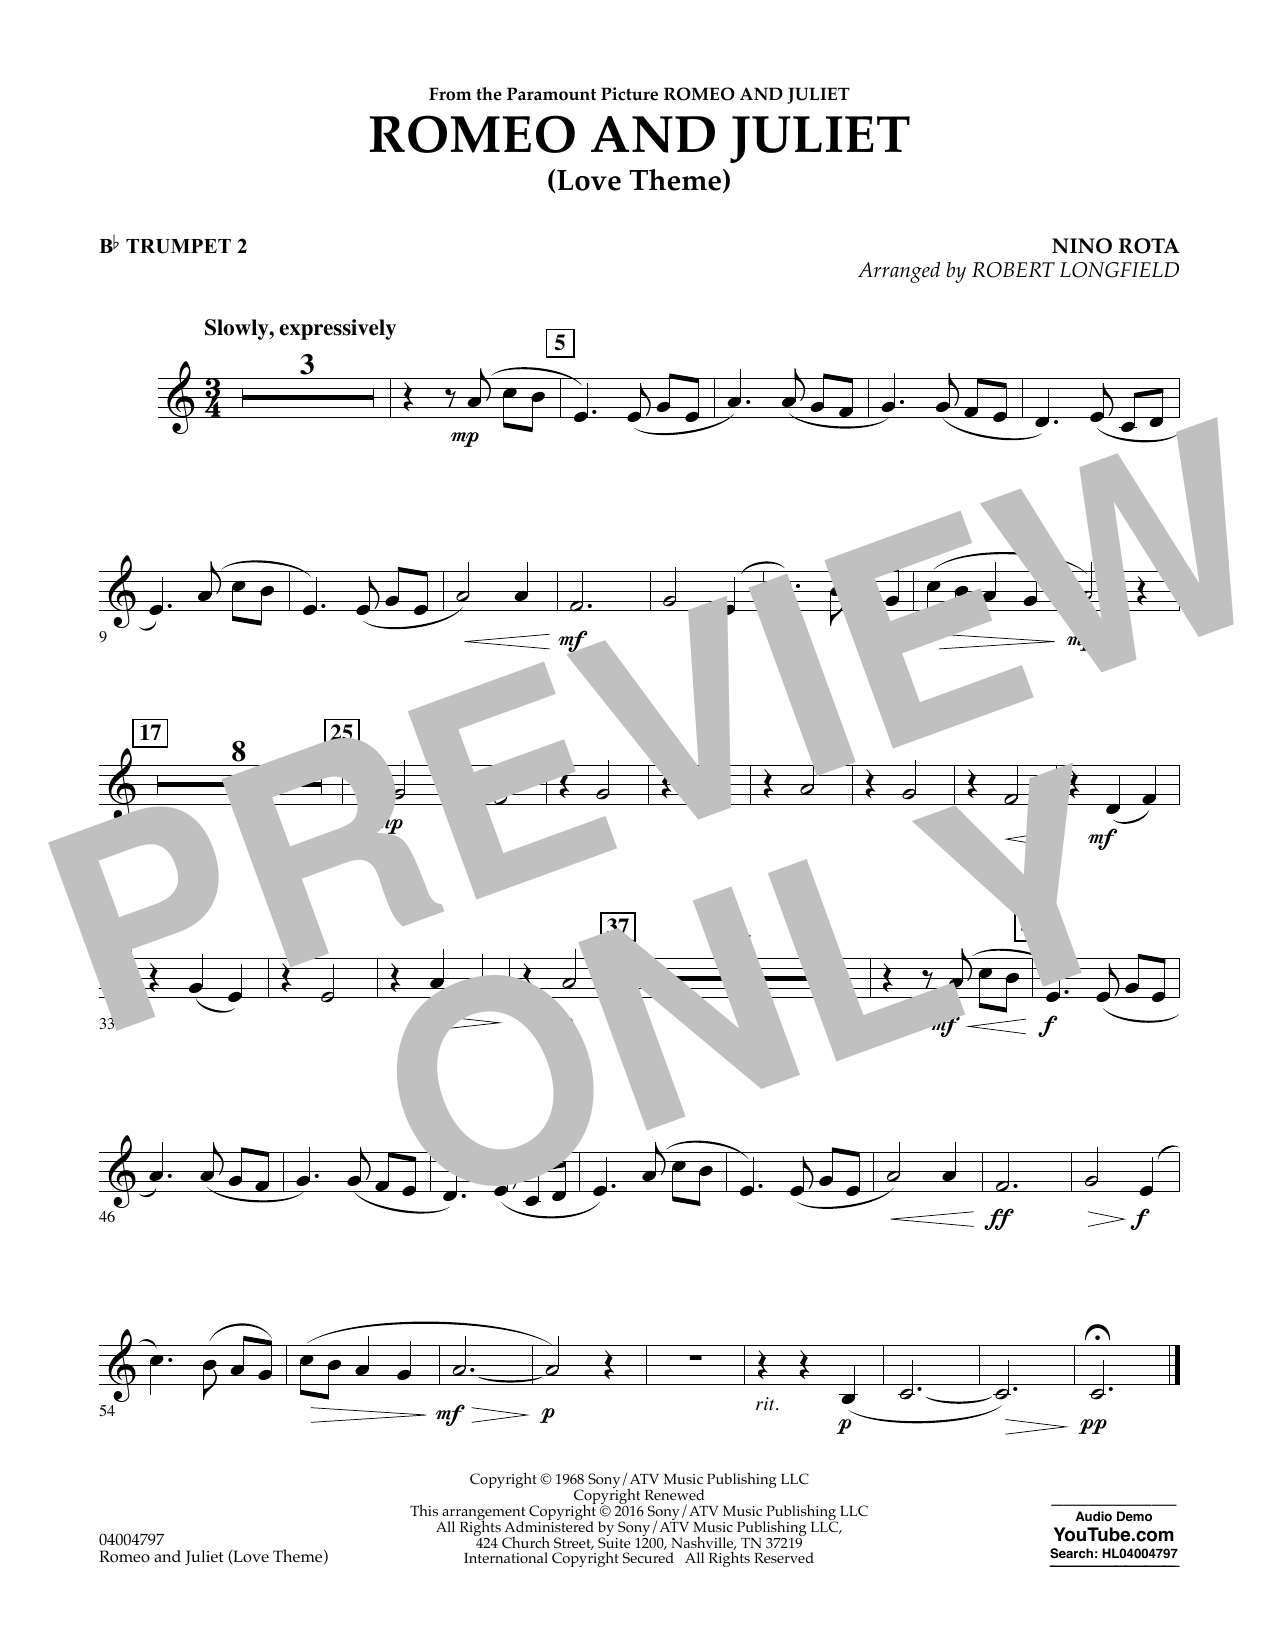 Romeo and Juliet (Love Theme) - Bb Trumpet 2 (Concert Band)